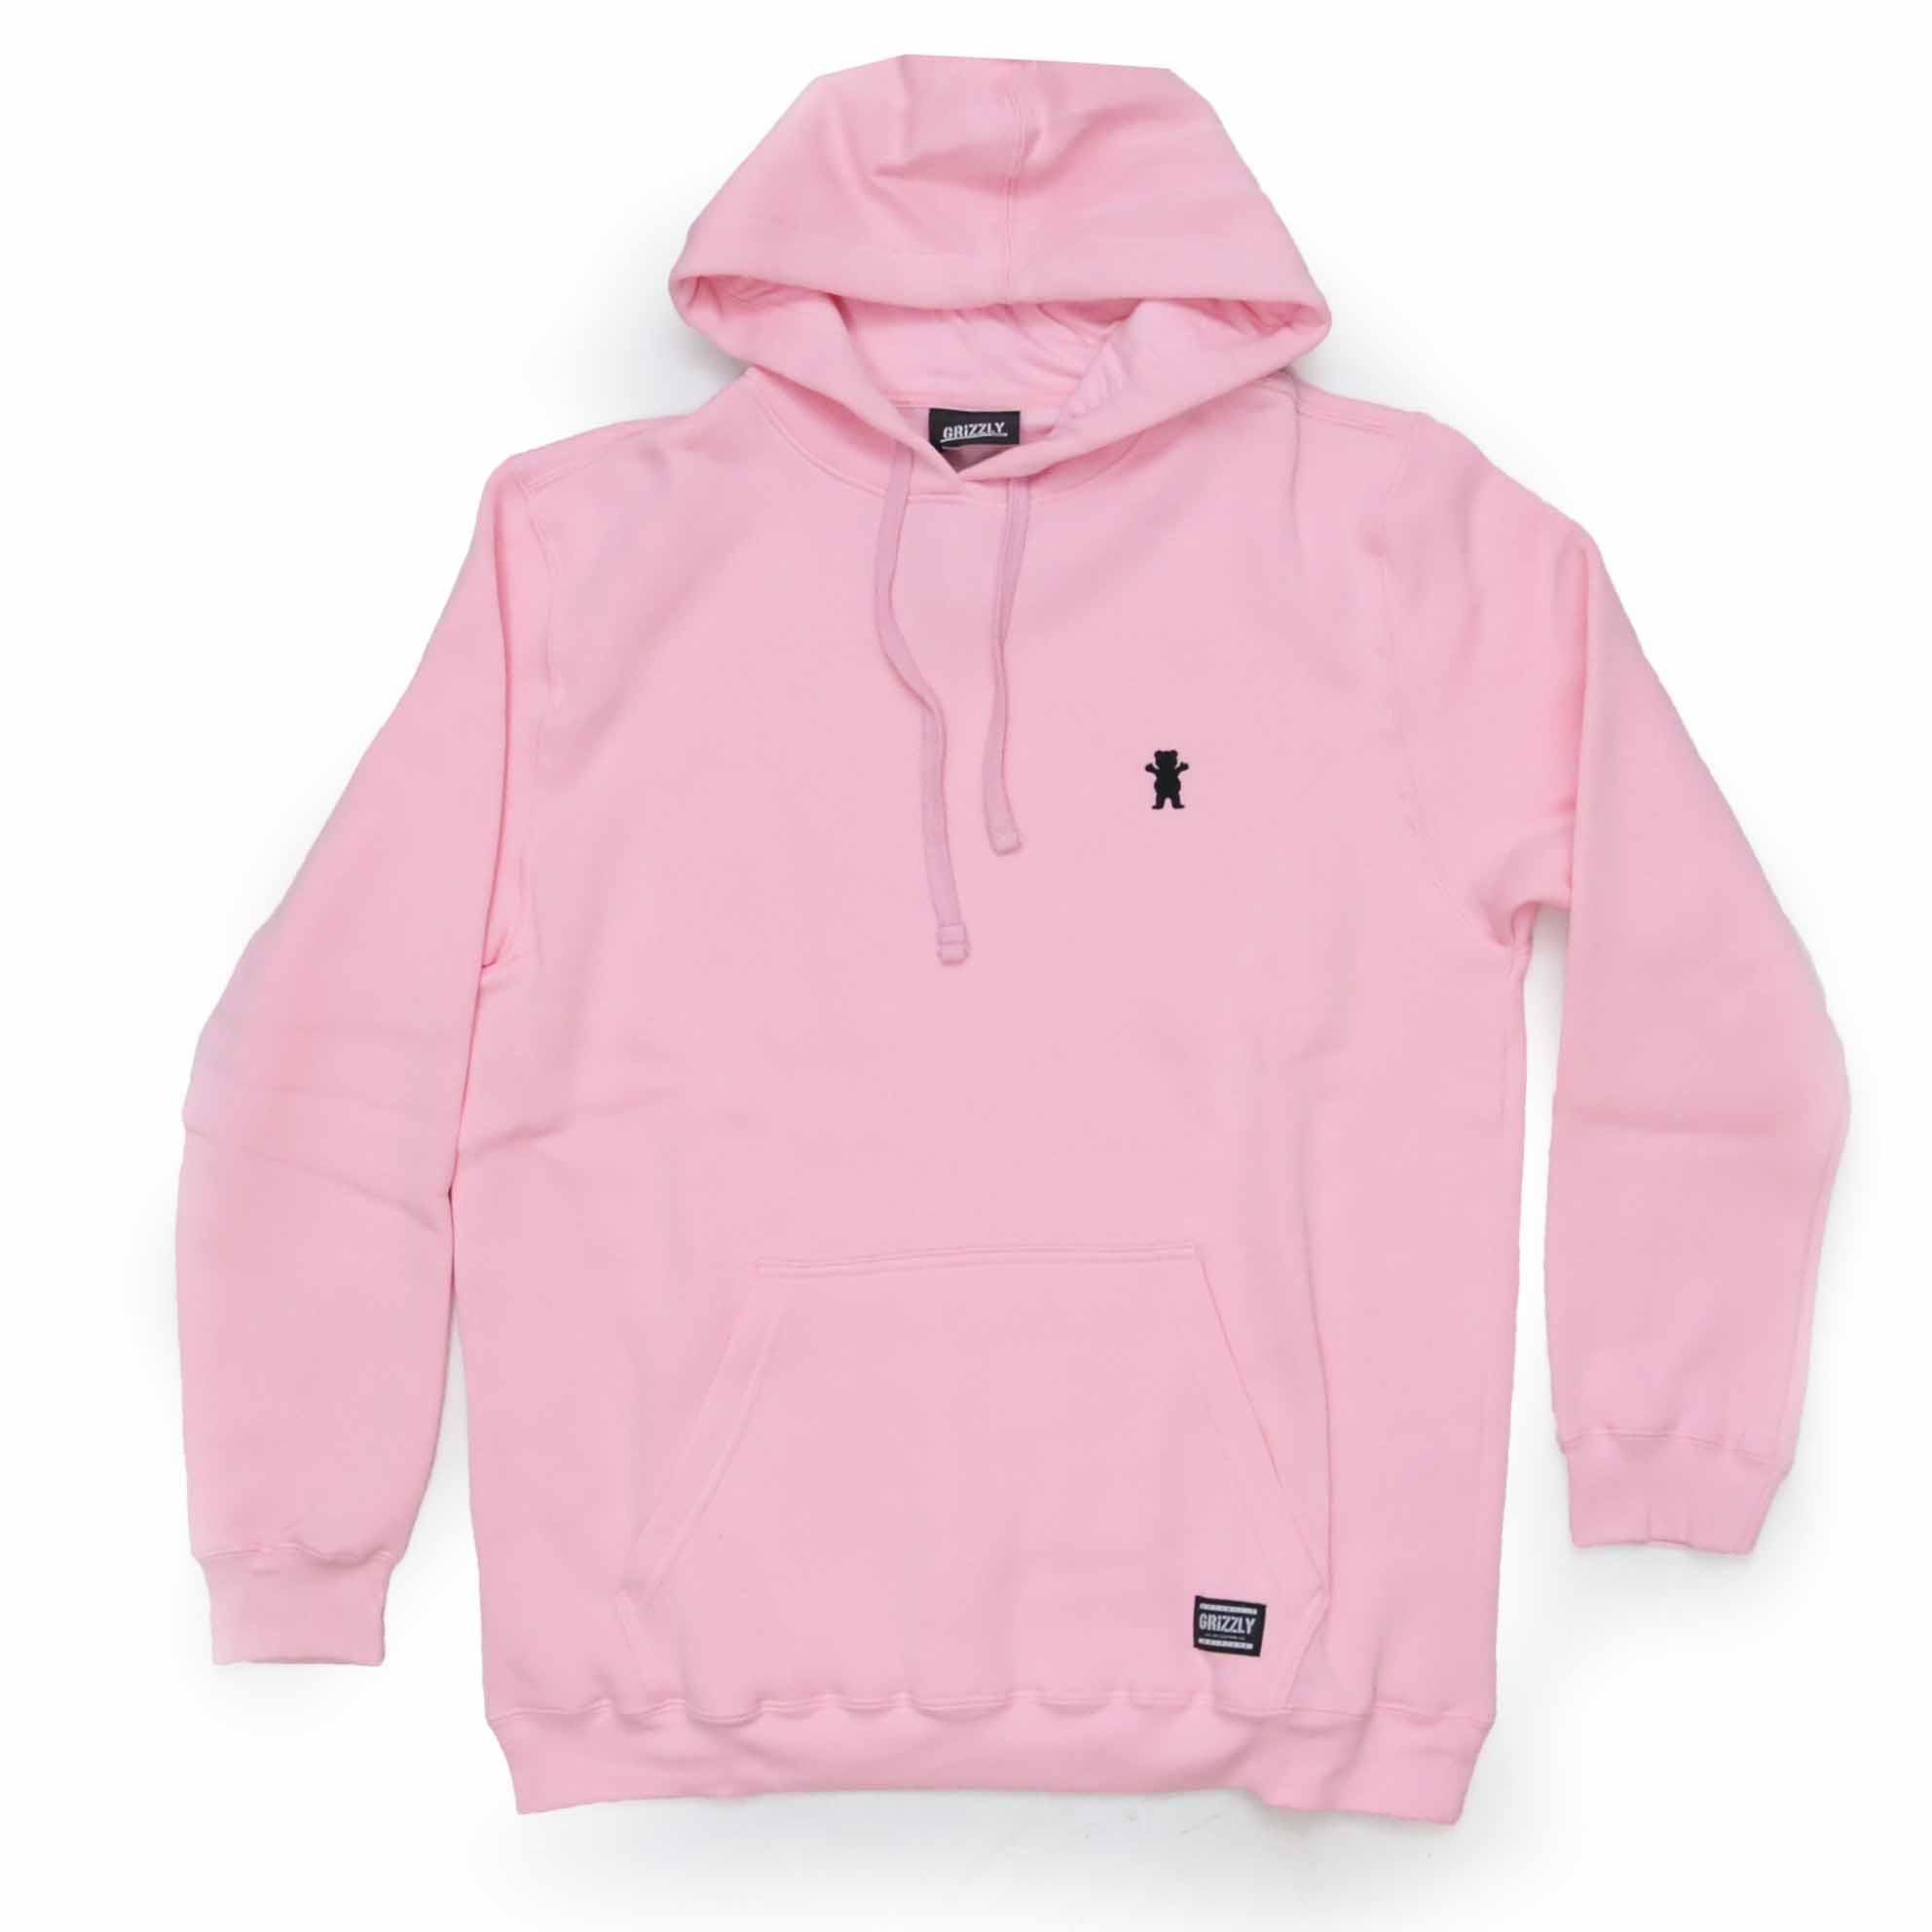 Moletom Grizzly Canguru Og Bear Pullover Bordado - Rosa